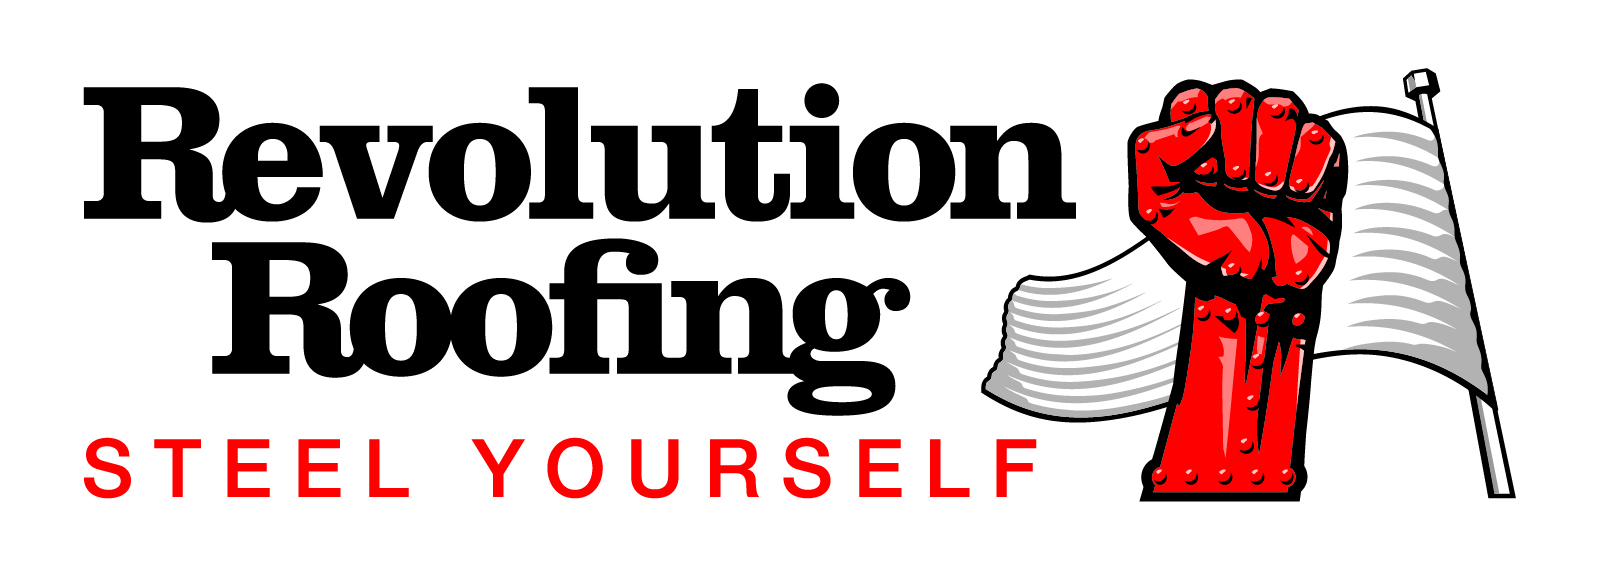 Revolution-Roofing_SteelYourself_New_CMYK_logo.jpg